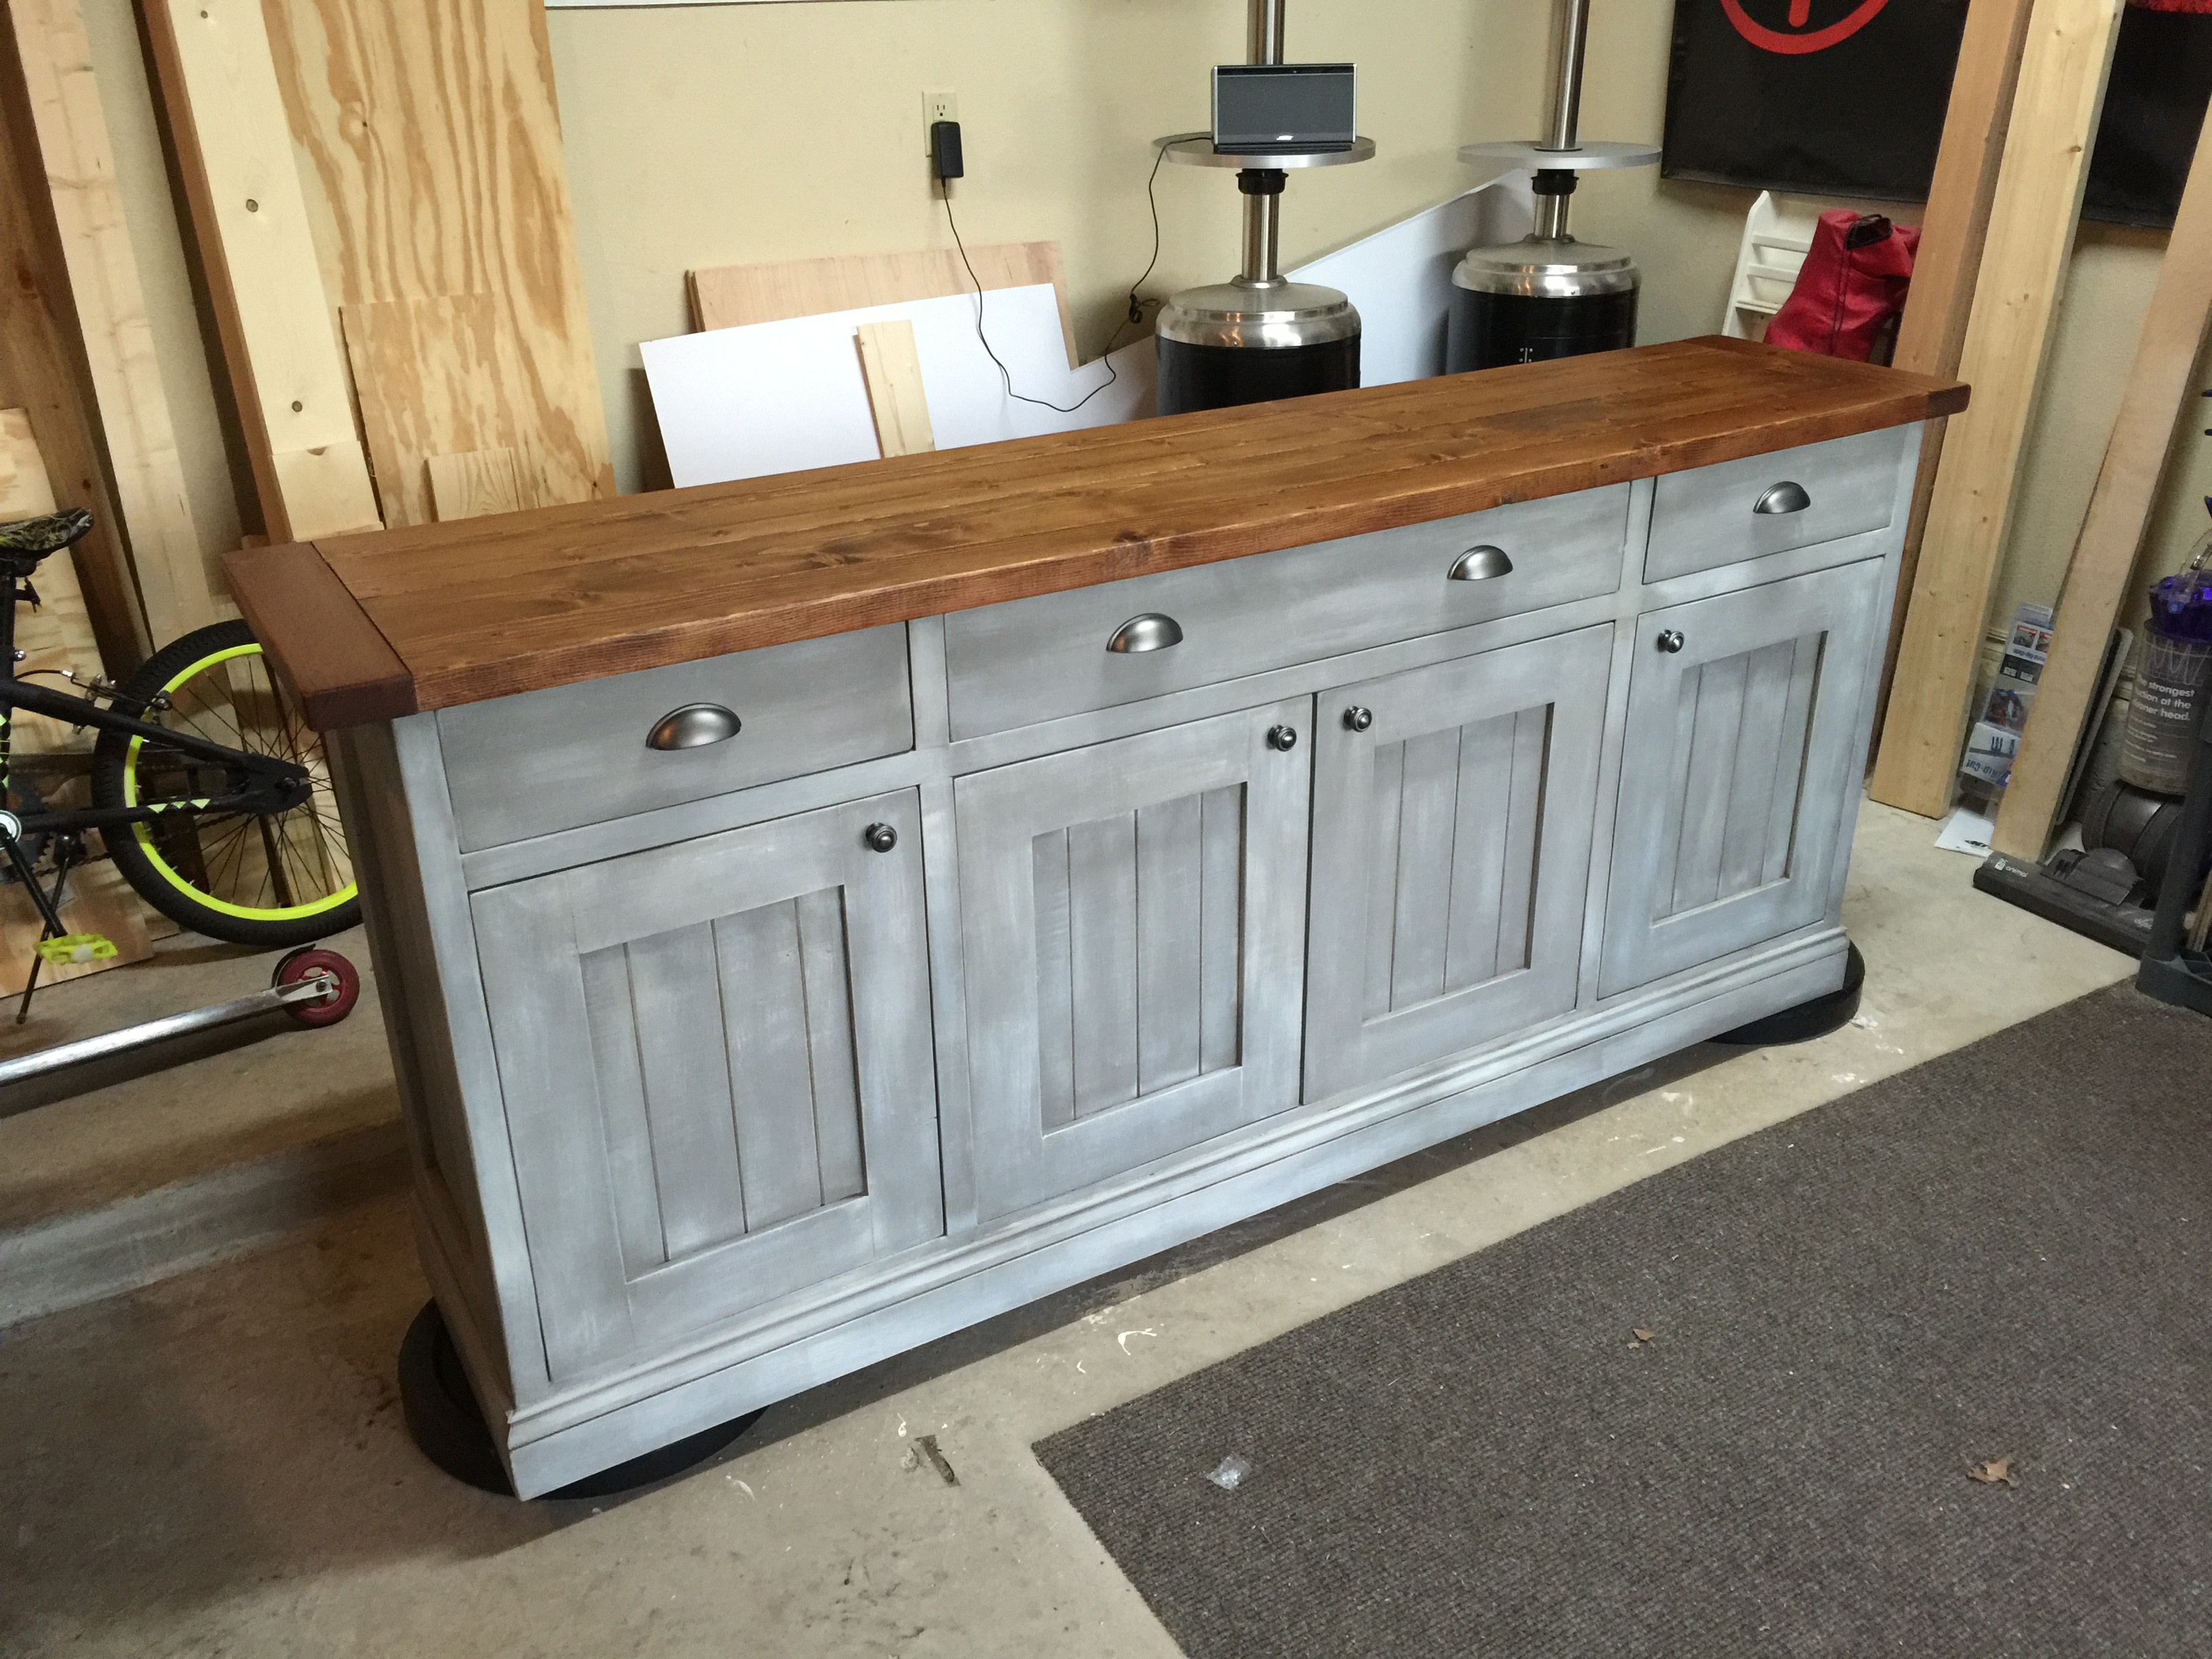 Planked Wood Sideboard - DIY Projects